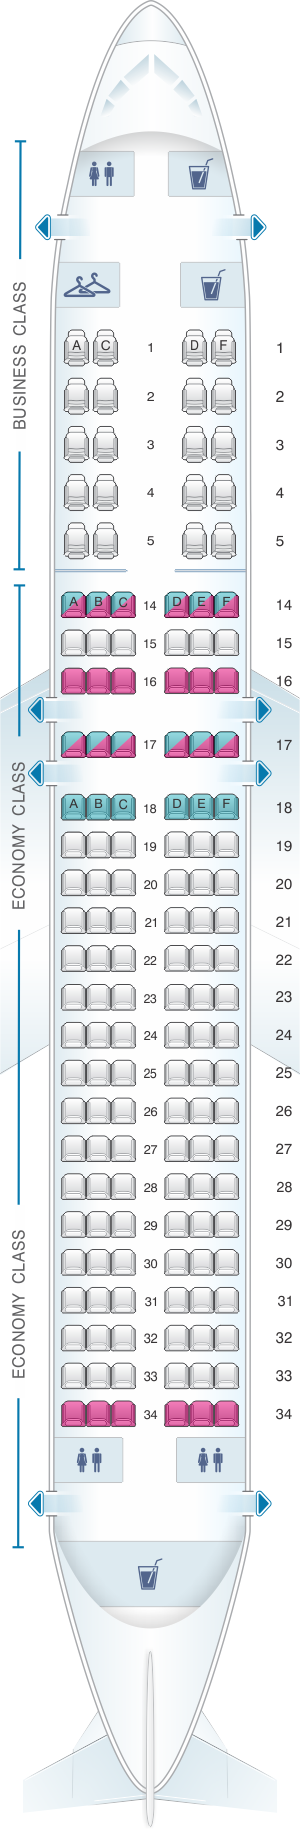 Seat map for Azal Azerbaijan Airlines Airbus A320